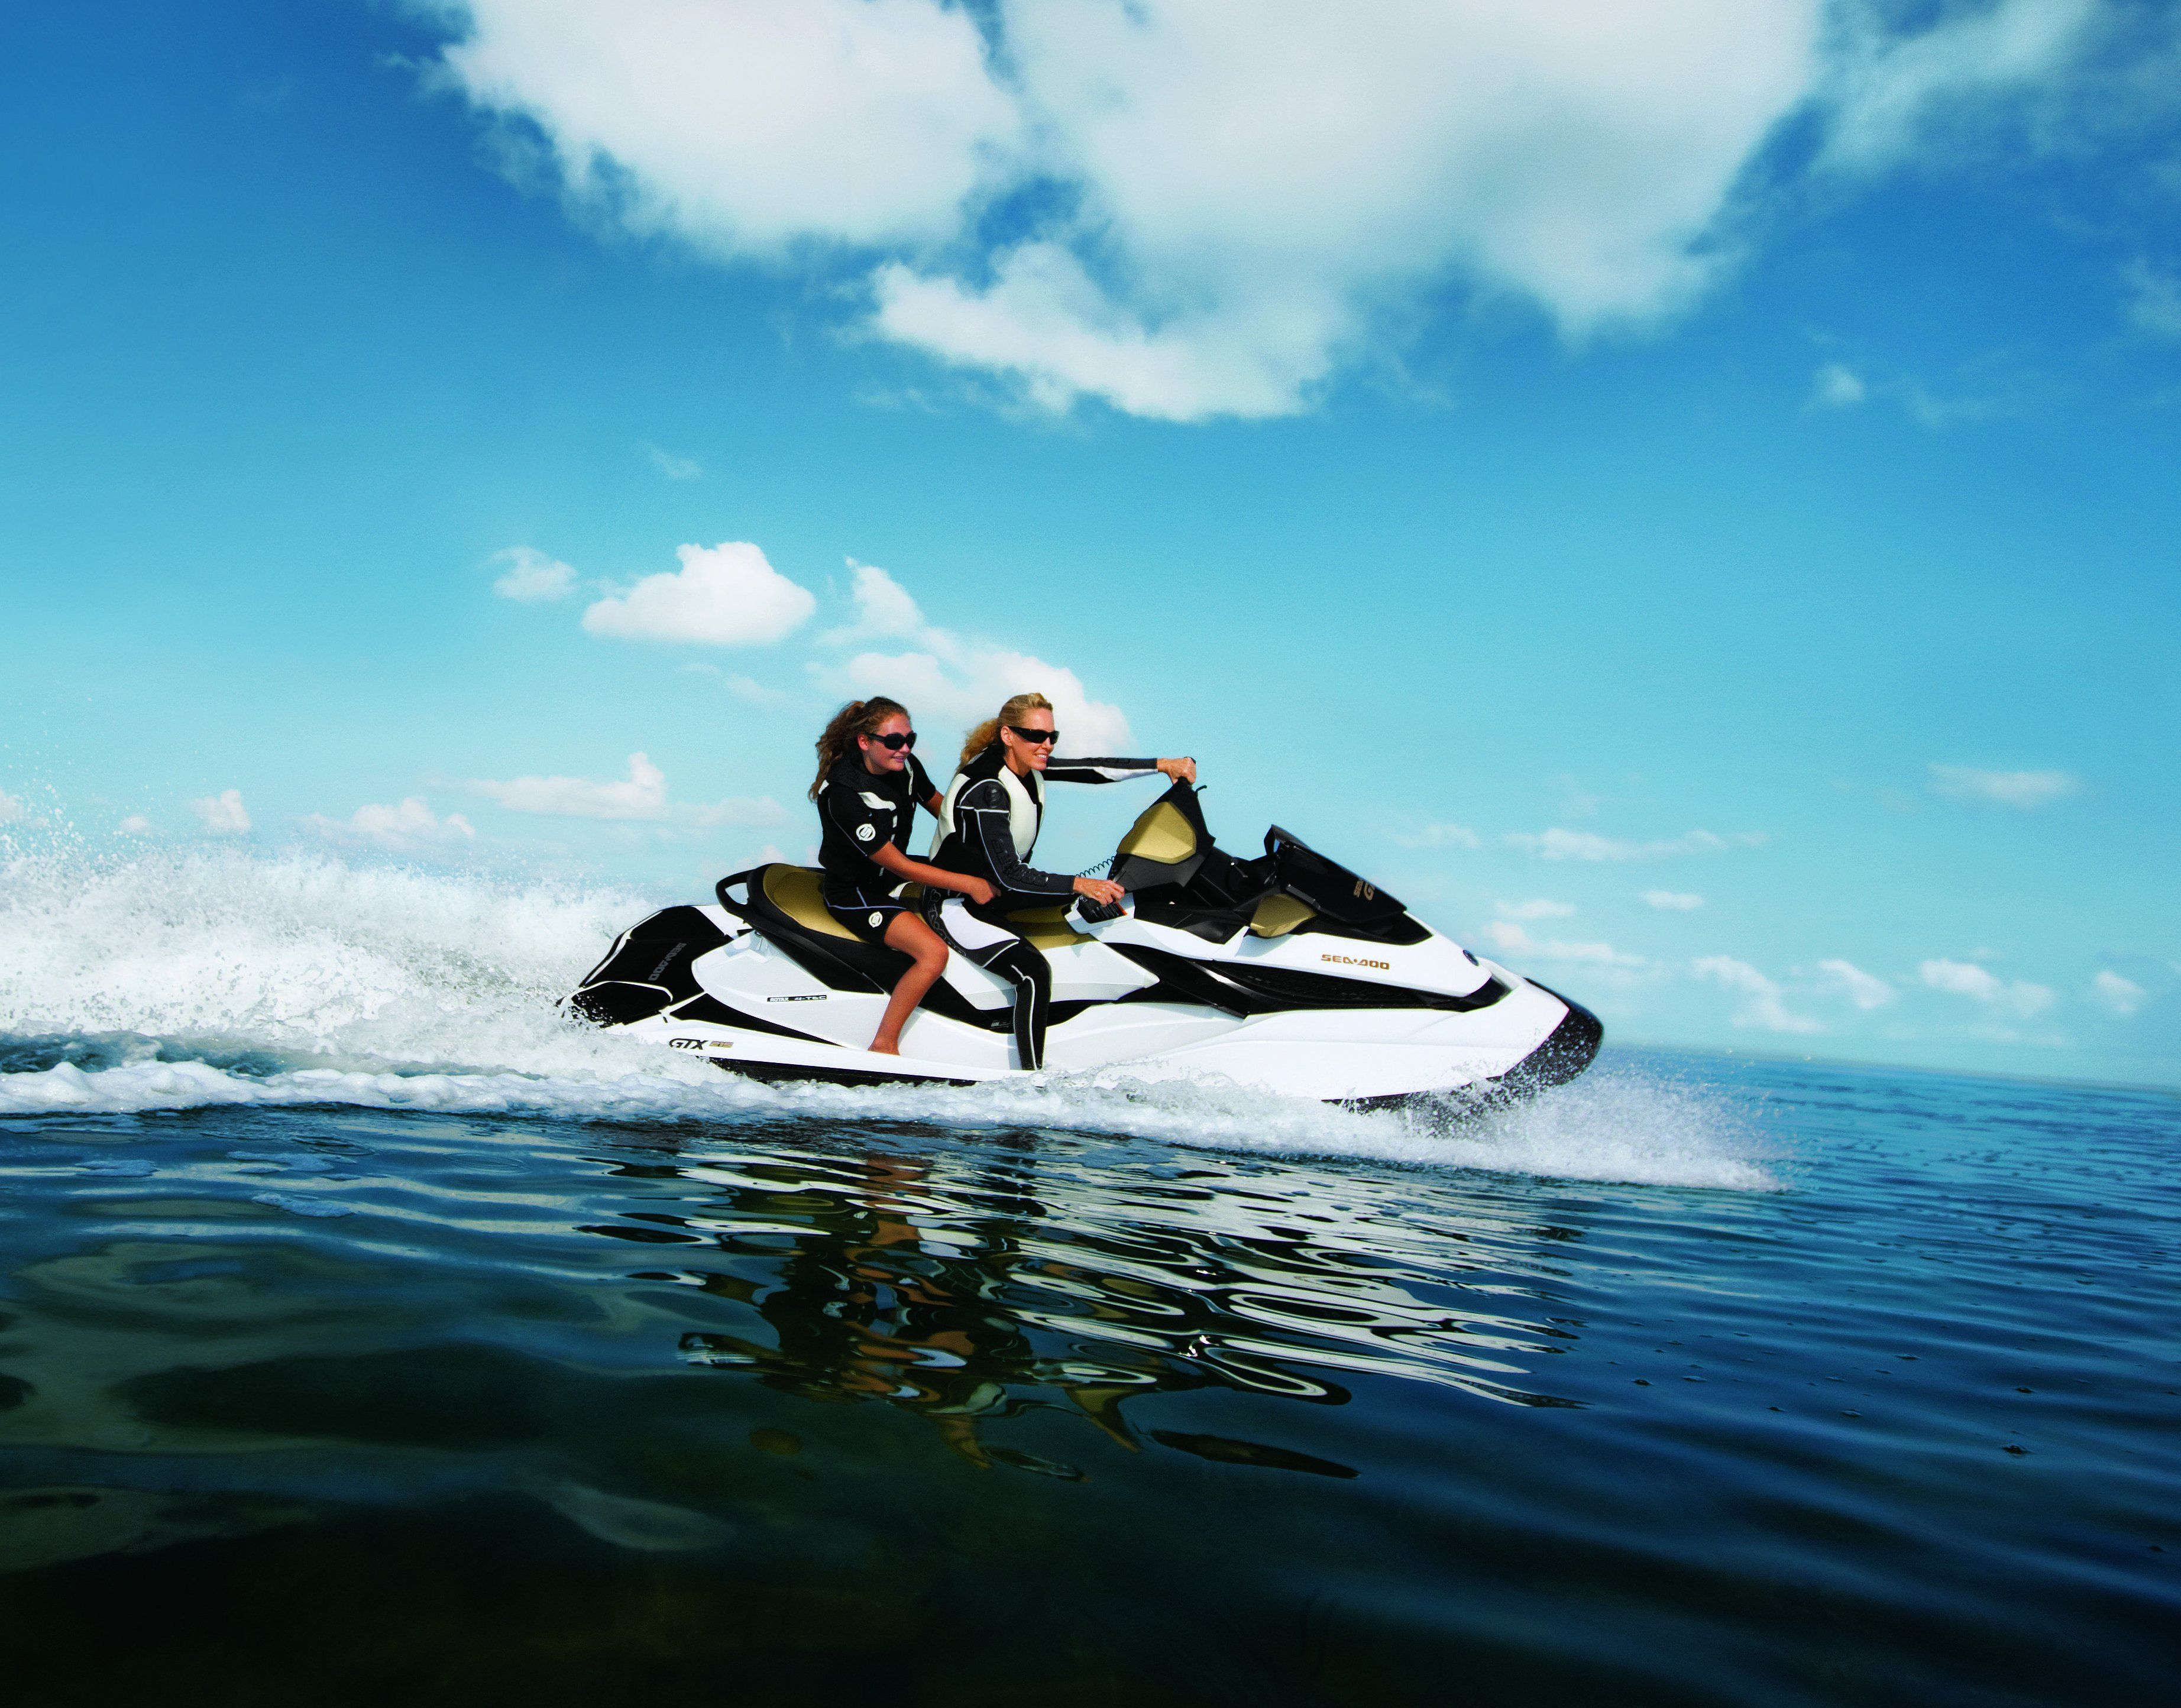 Pictures of Jet Ski Wallpapers